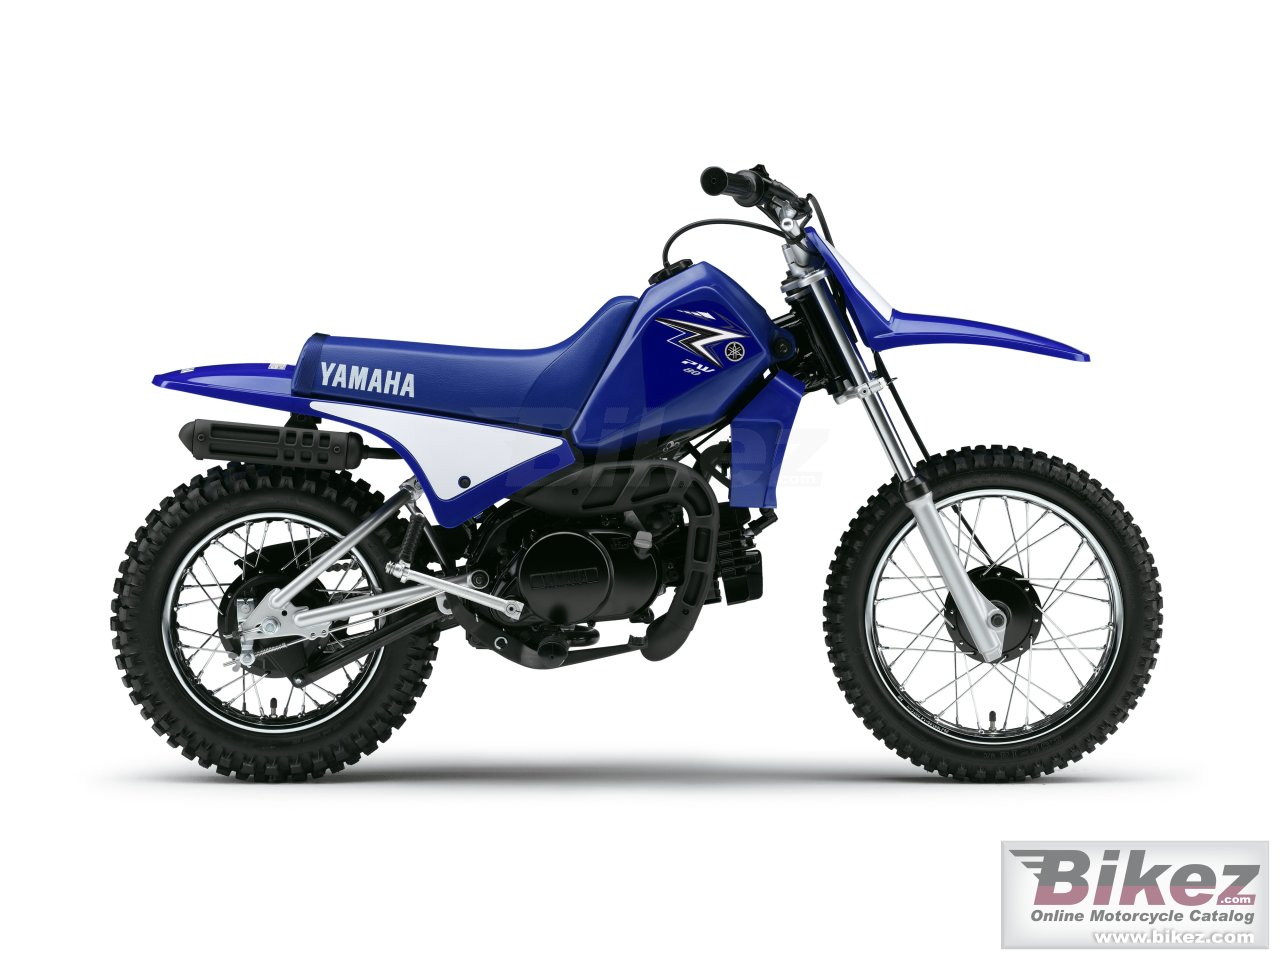 Big Yamaha pw80 picture and wallpaper from Bikez.com